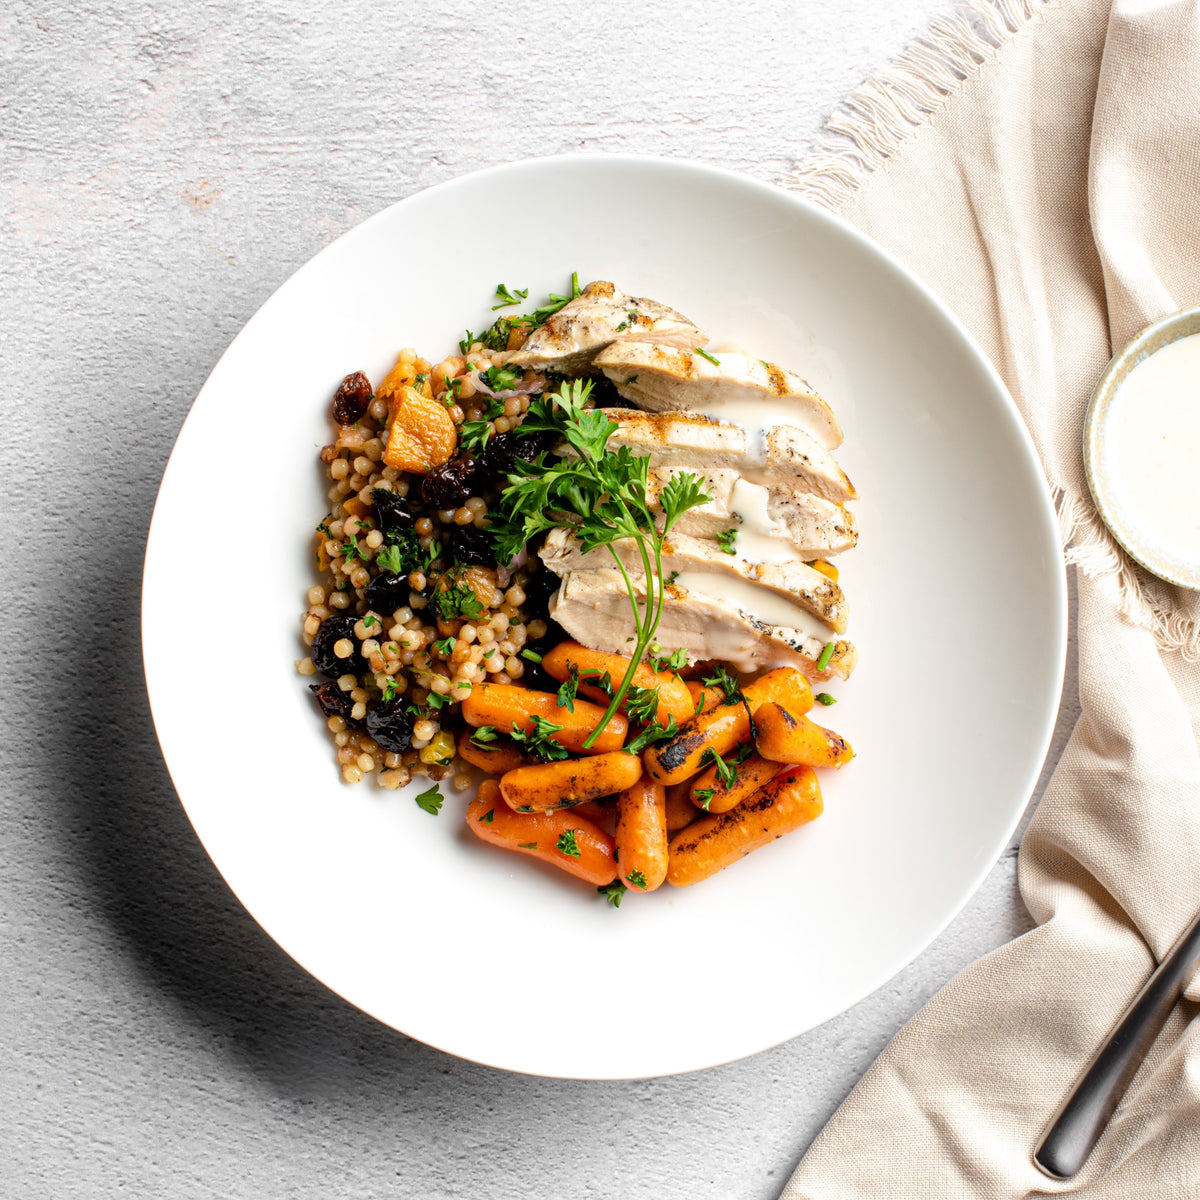 Mediterranean Chicken Breast with Orange Honey Labneh Sauce, Israeli Couscous and Honey Roasted Carrots - Homebistro